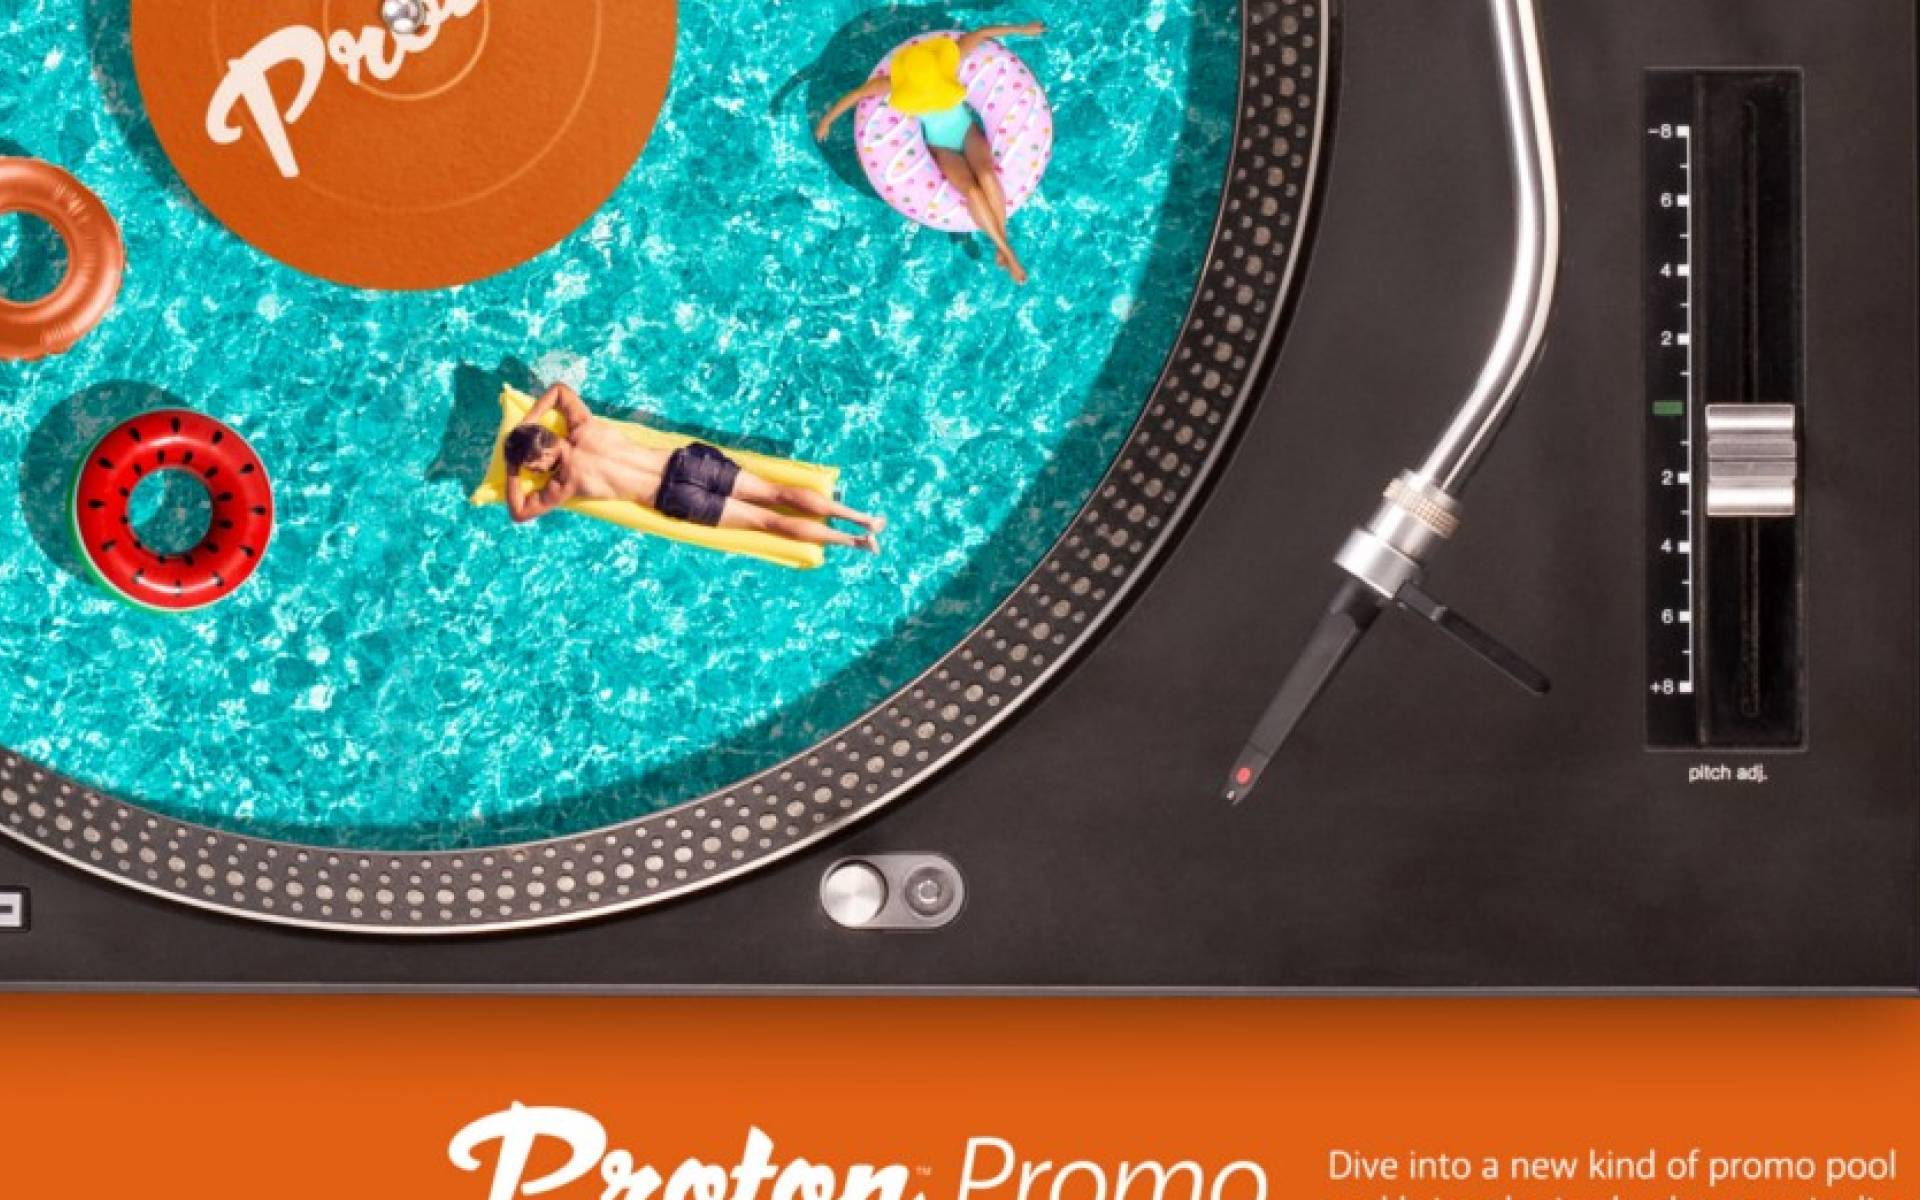 Proton Promo, now in Early Access